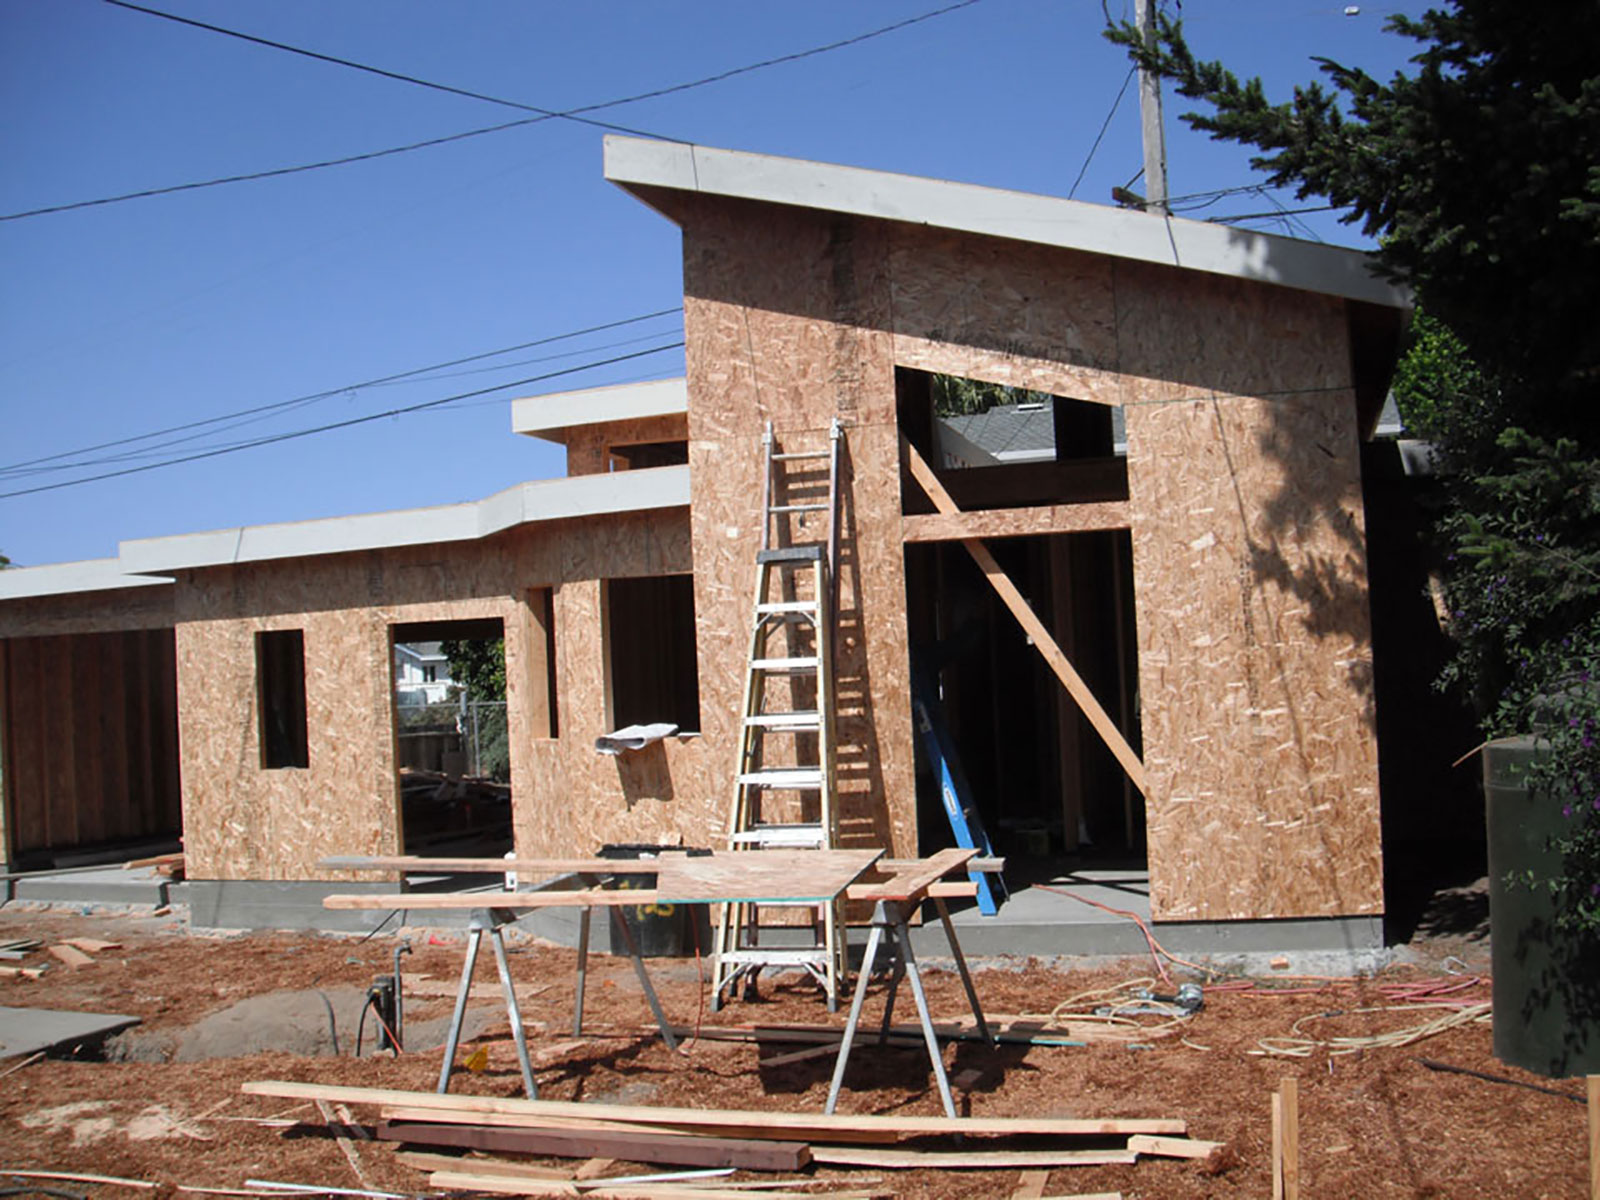 How to build accessory dwelling units a step by step guide for How to build an adu